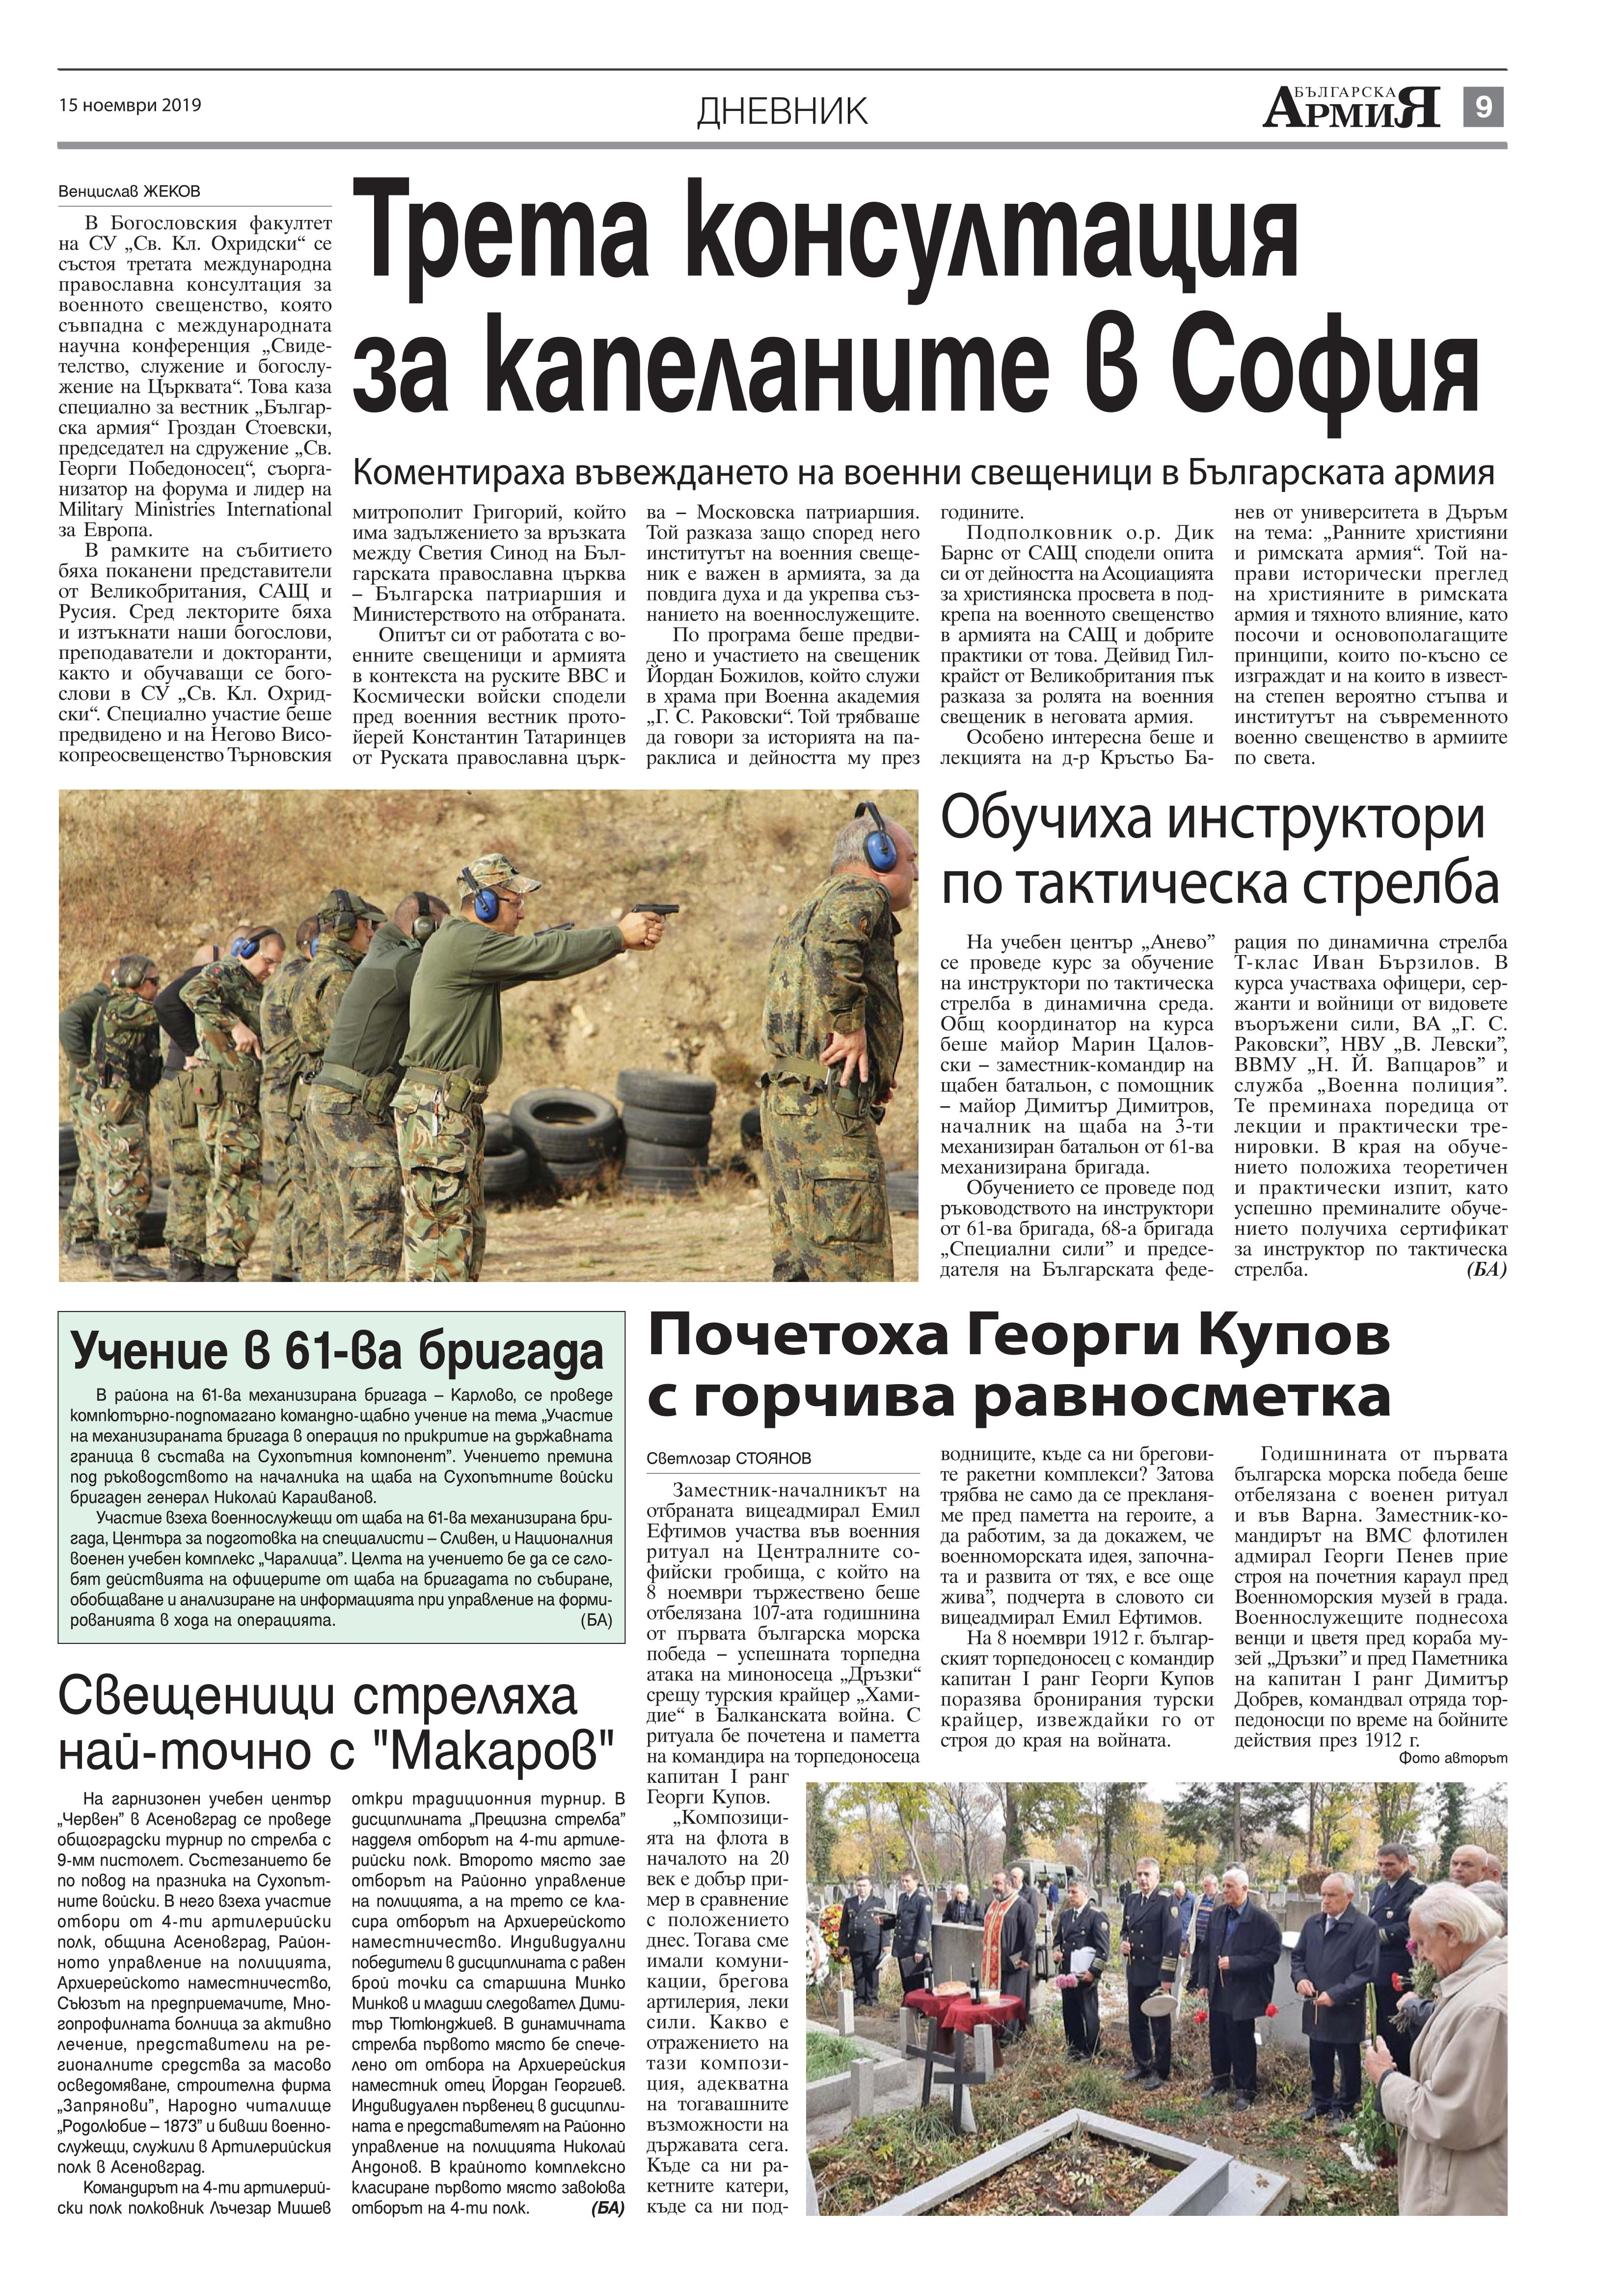 https://armymedia.bg/wp-content/uploads/2015/06/09.page1_-114.jpg